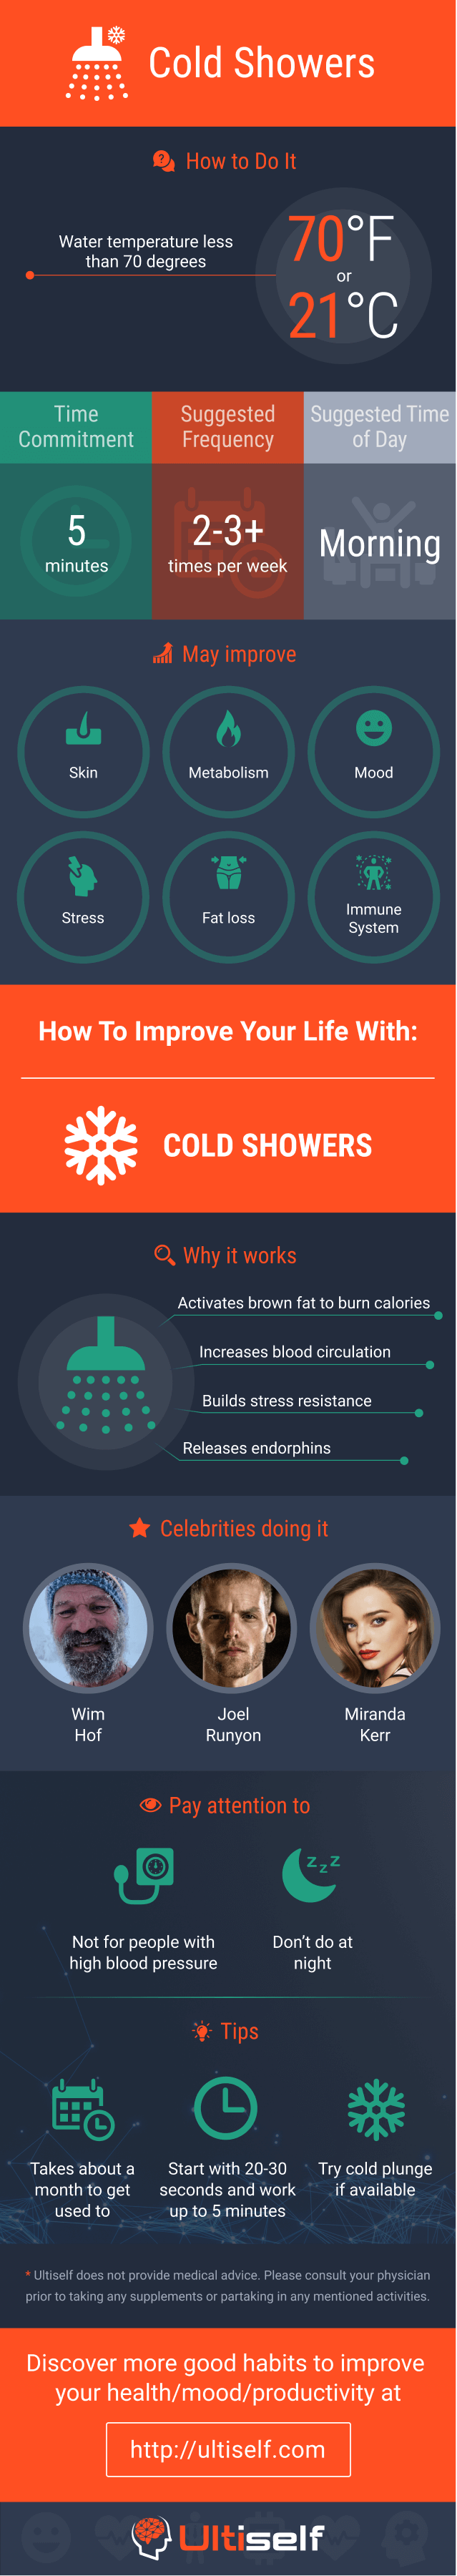 Cold Showers infographic